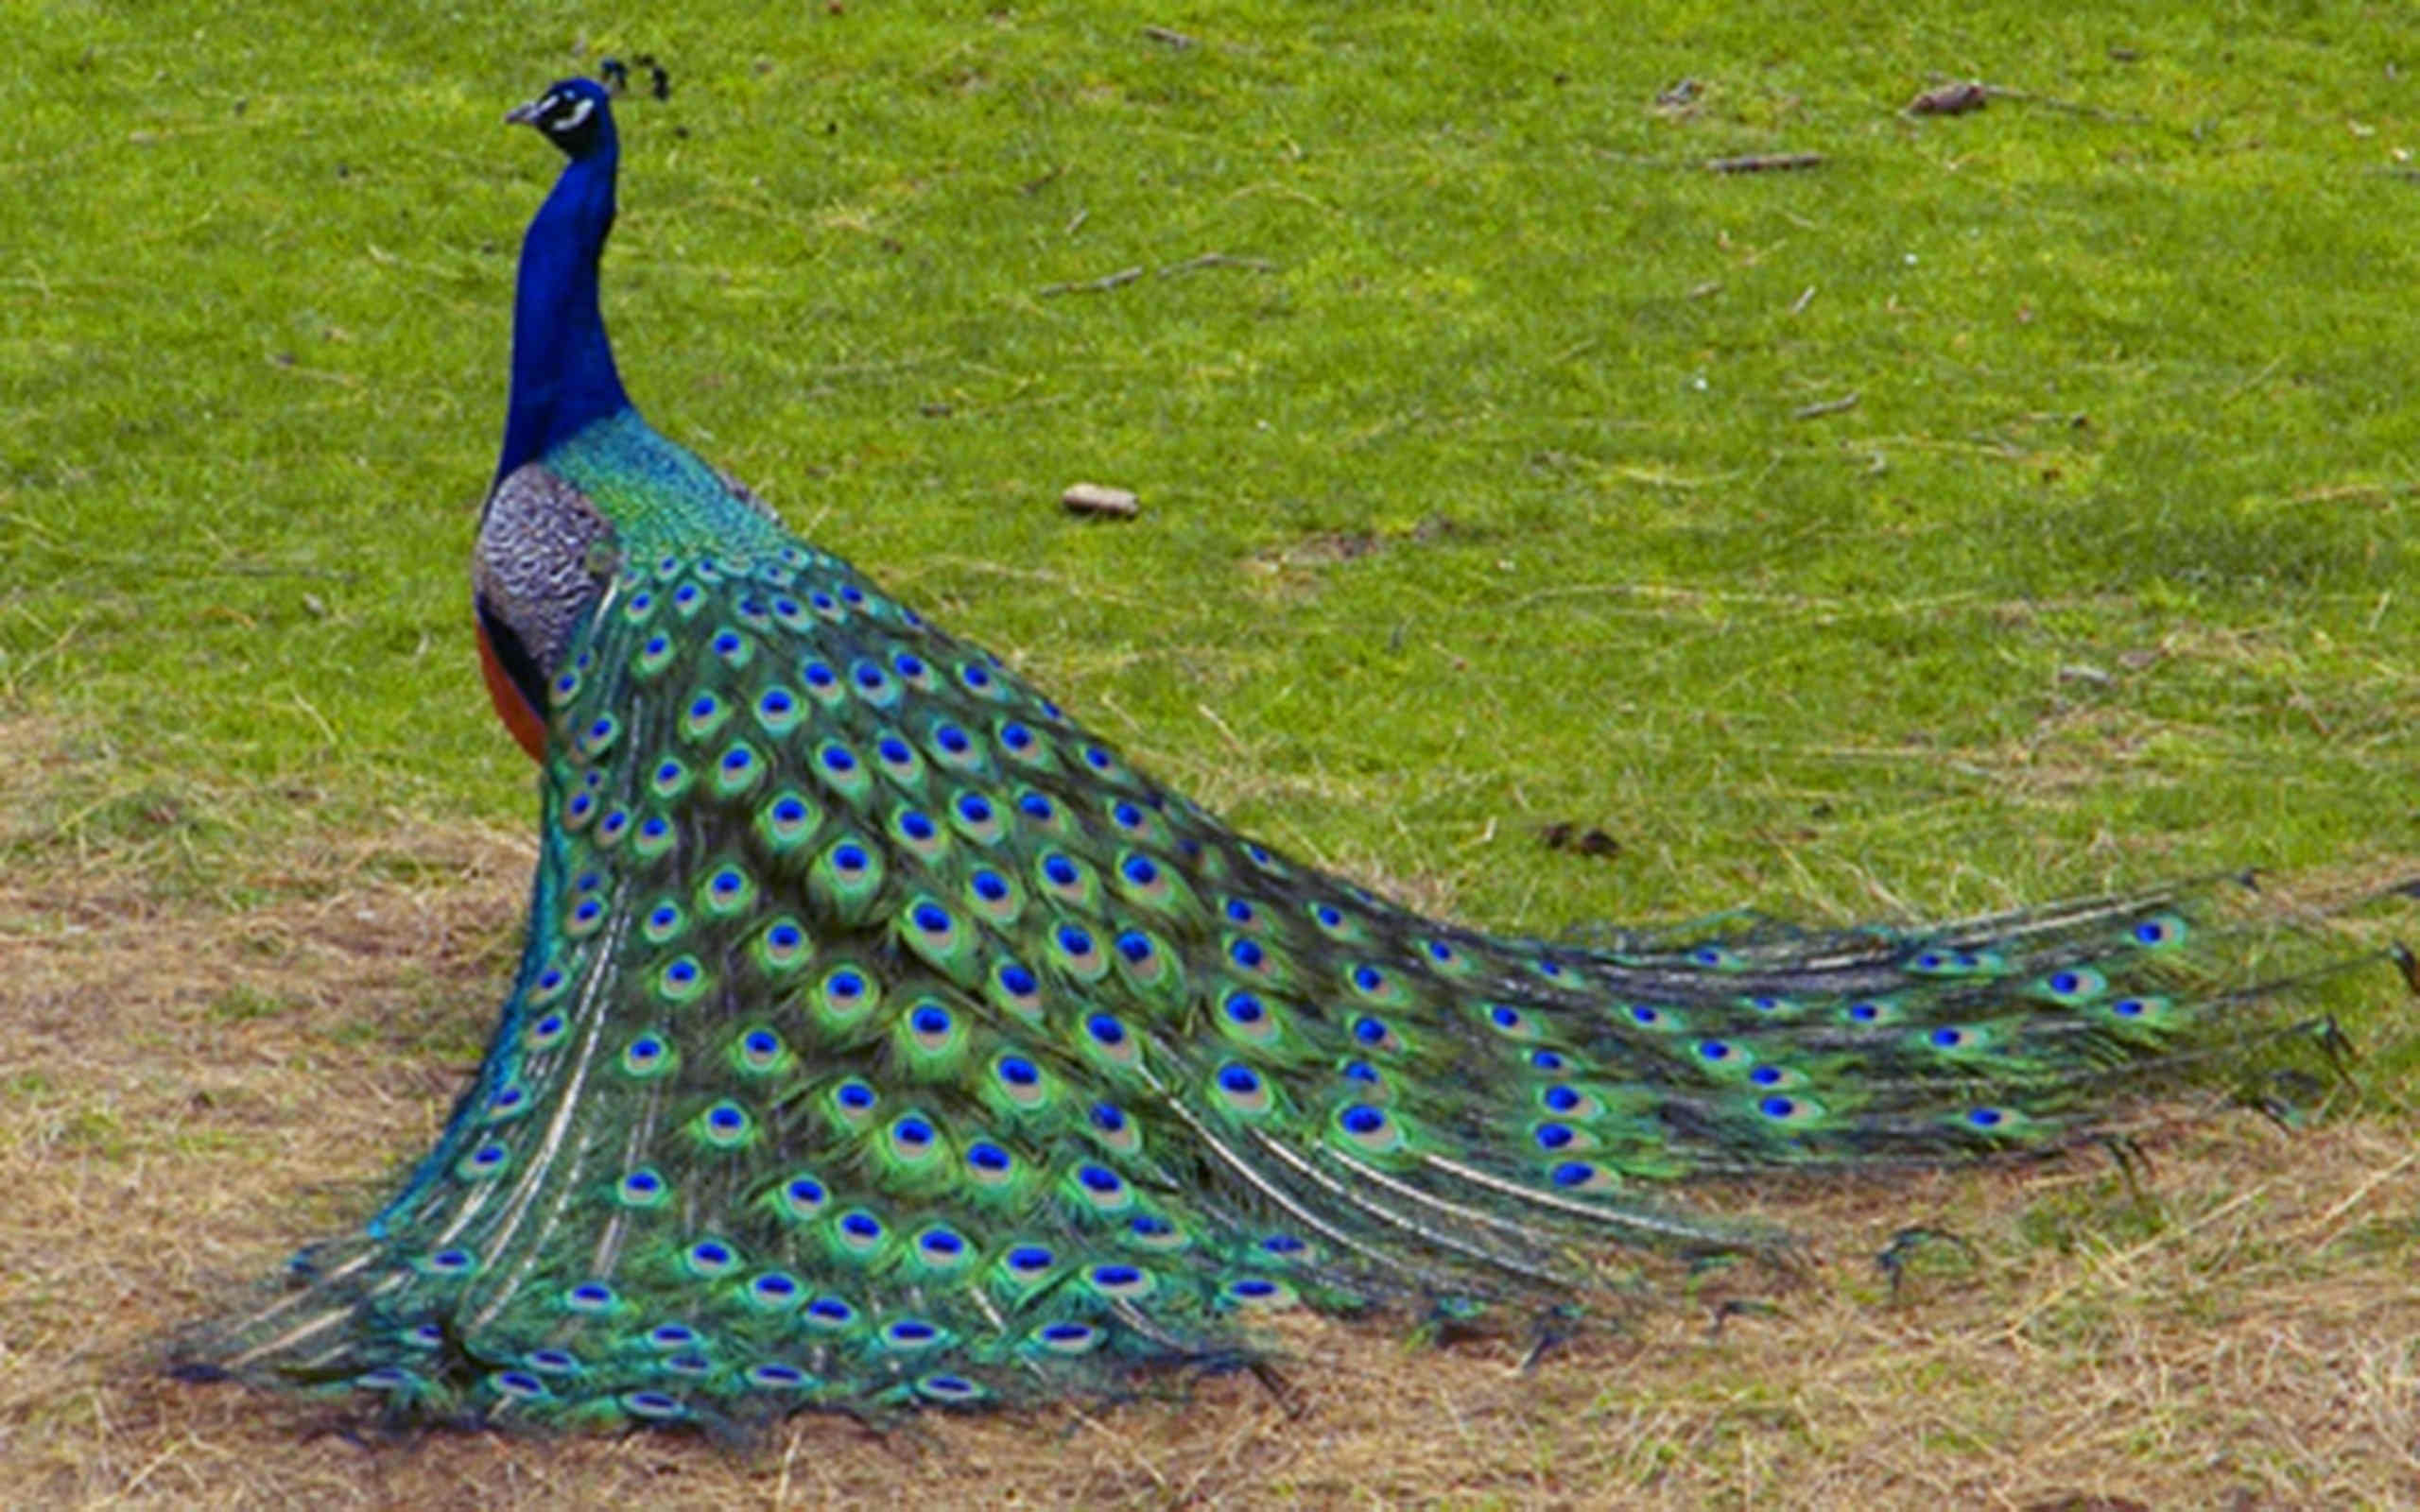 Extraordinary Peacock Wallpaper